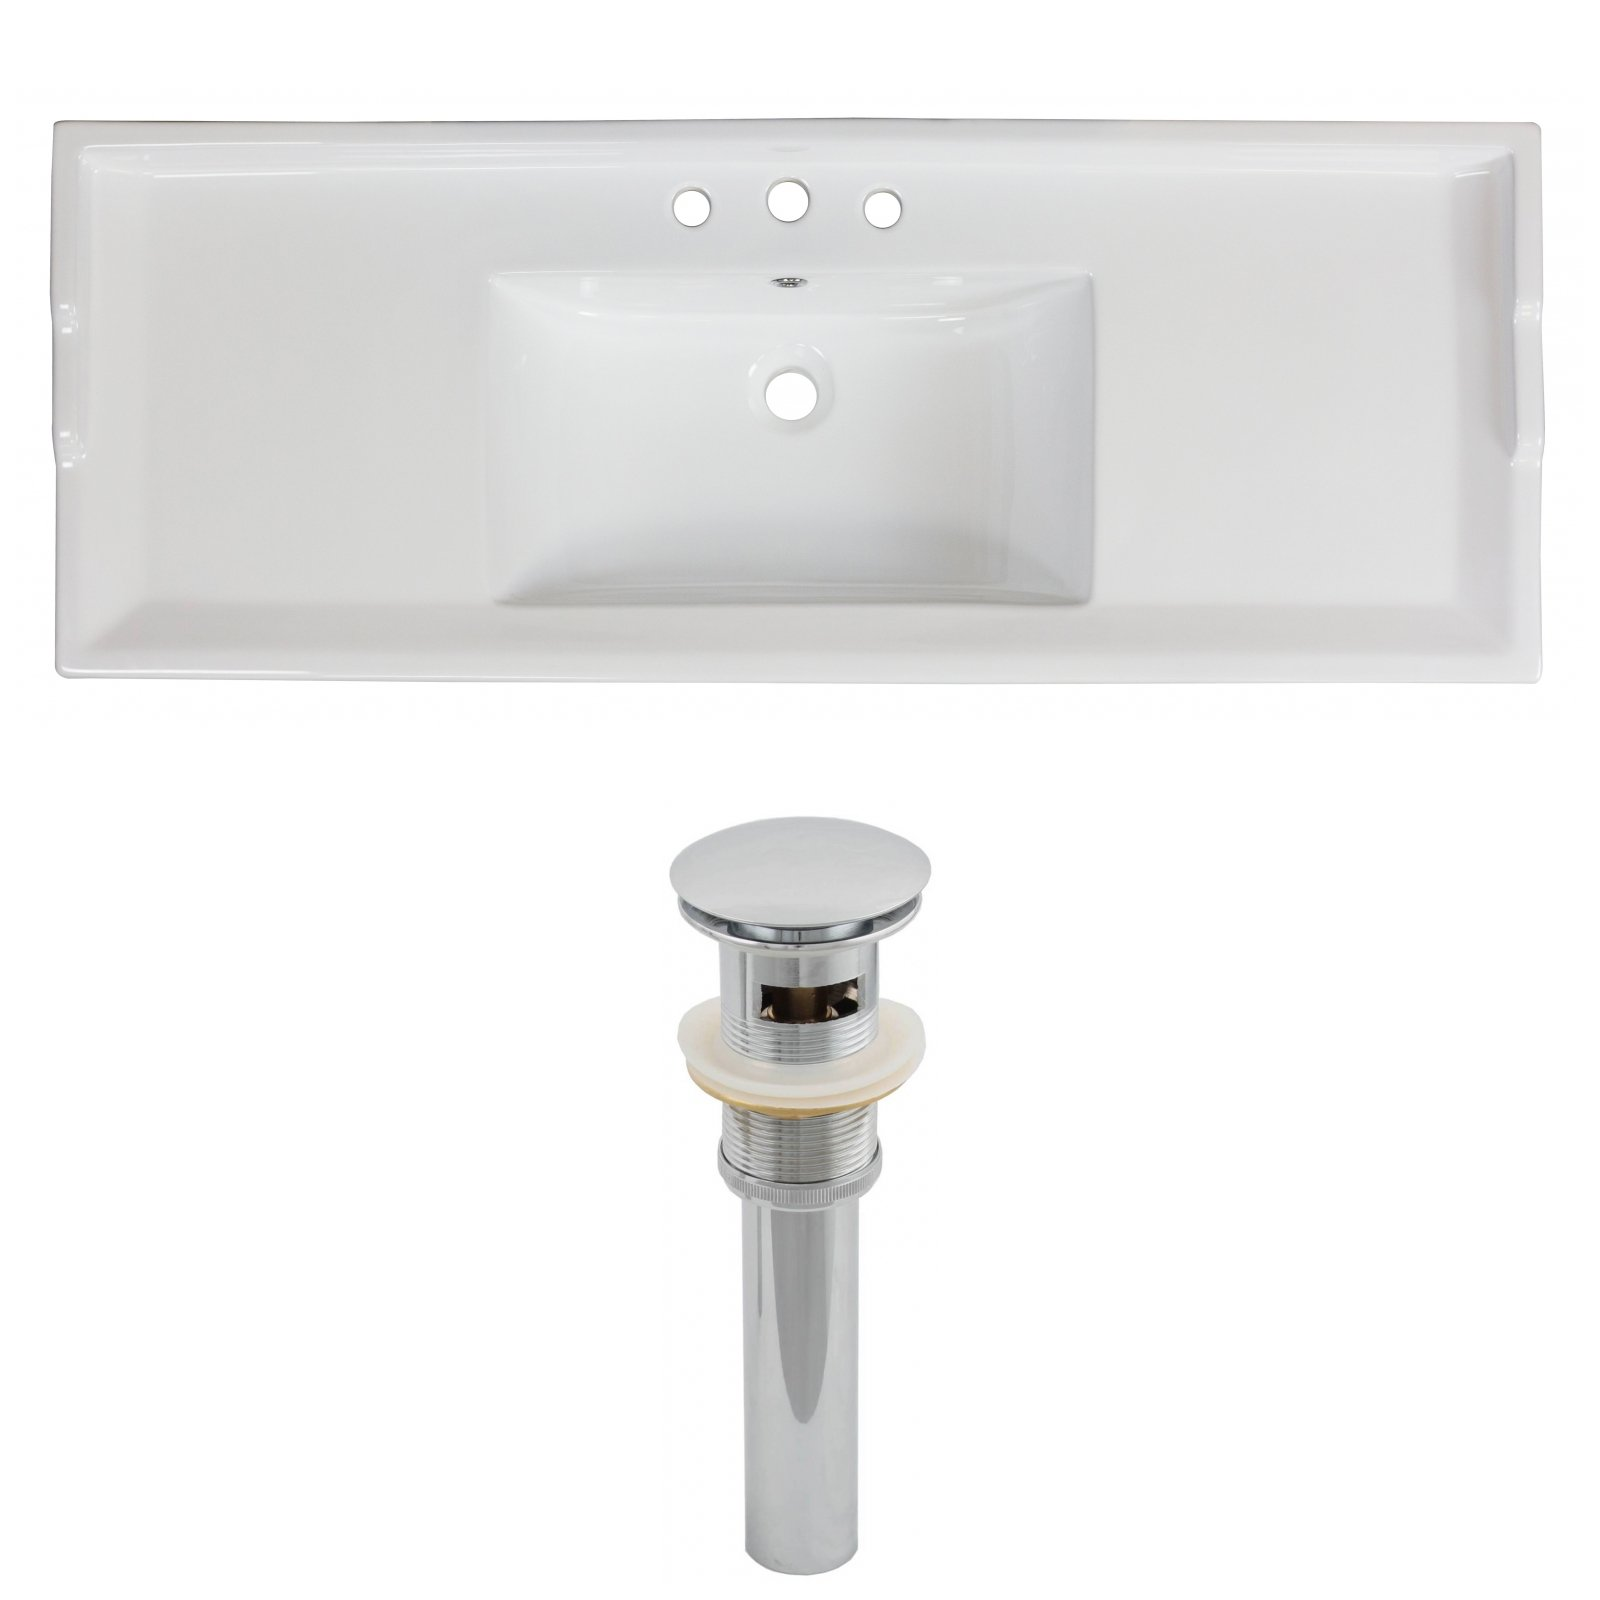 American Imaginations AI-15-595 Above Counter Square Vessel for Single Hole Faucet, 17.5-Inch x 17.5-Inch, White